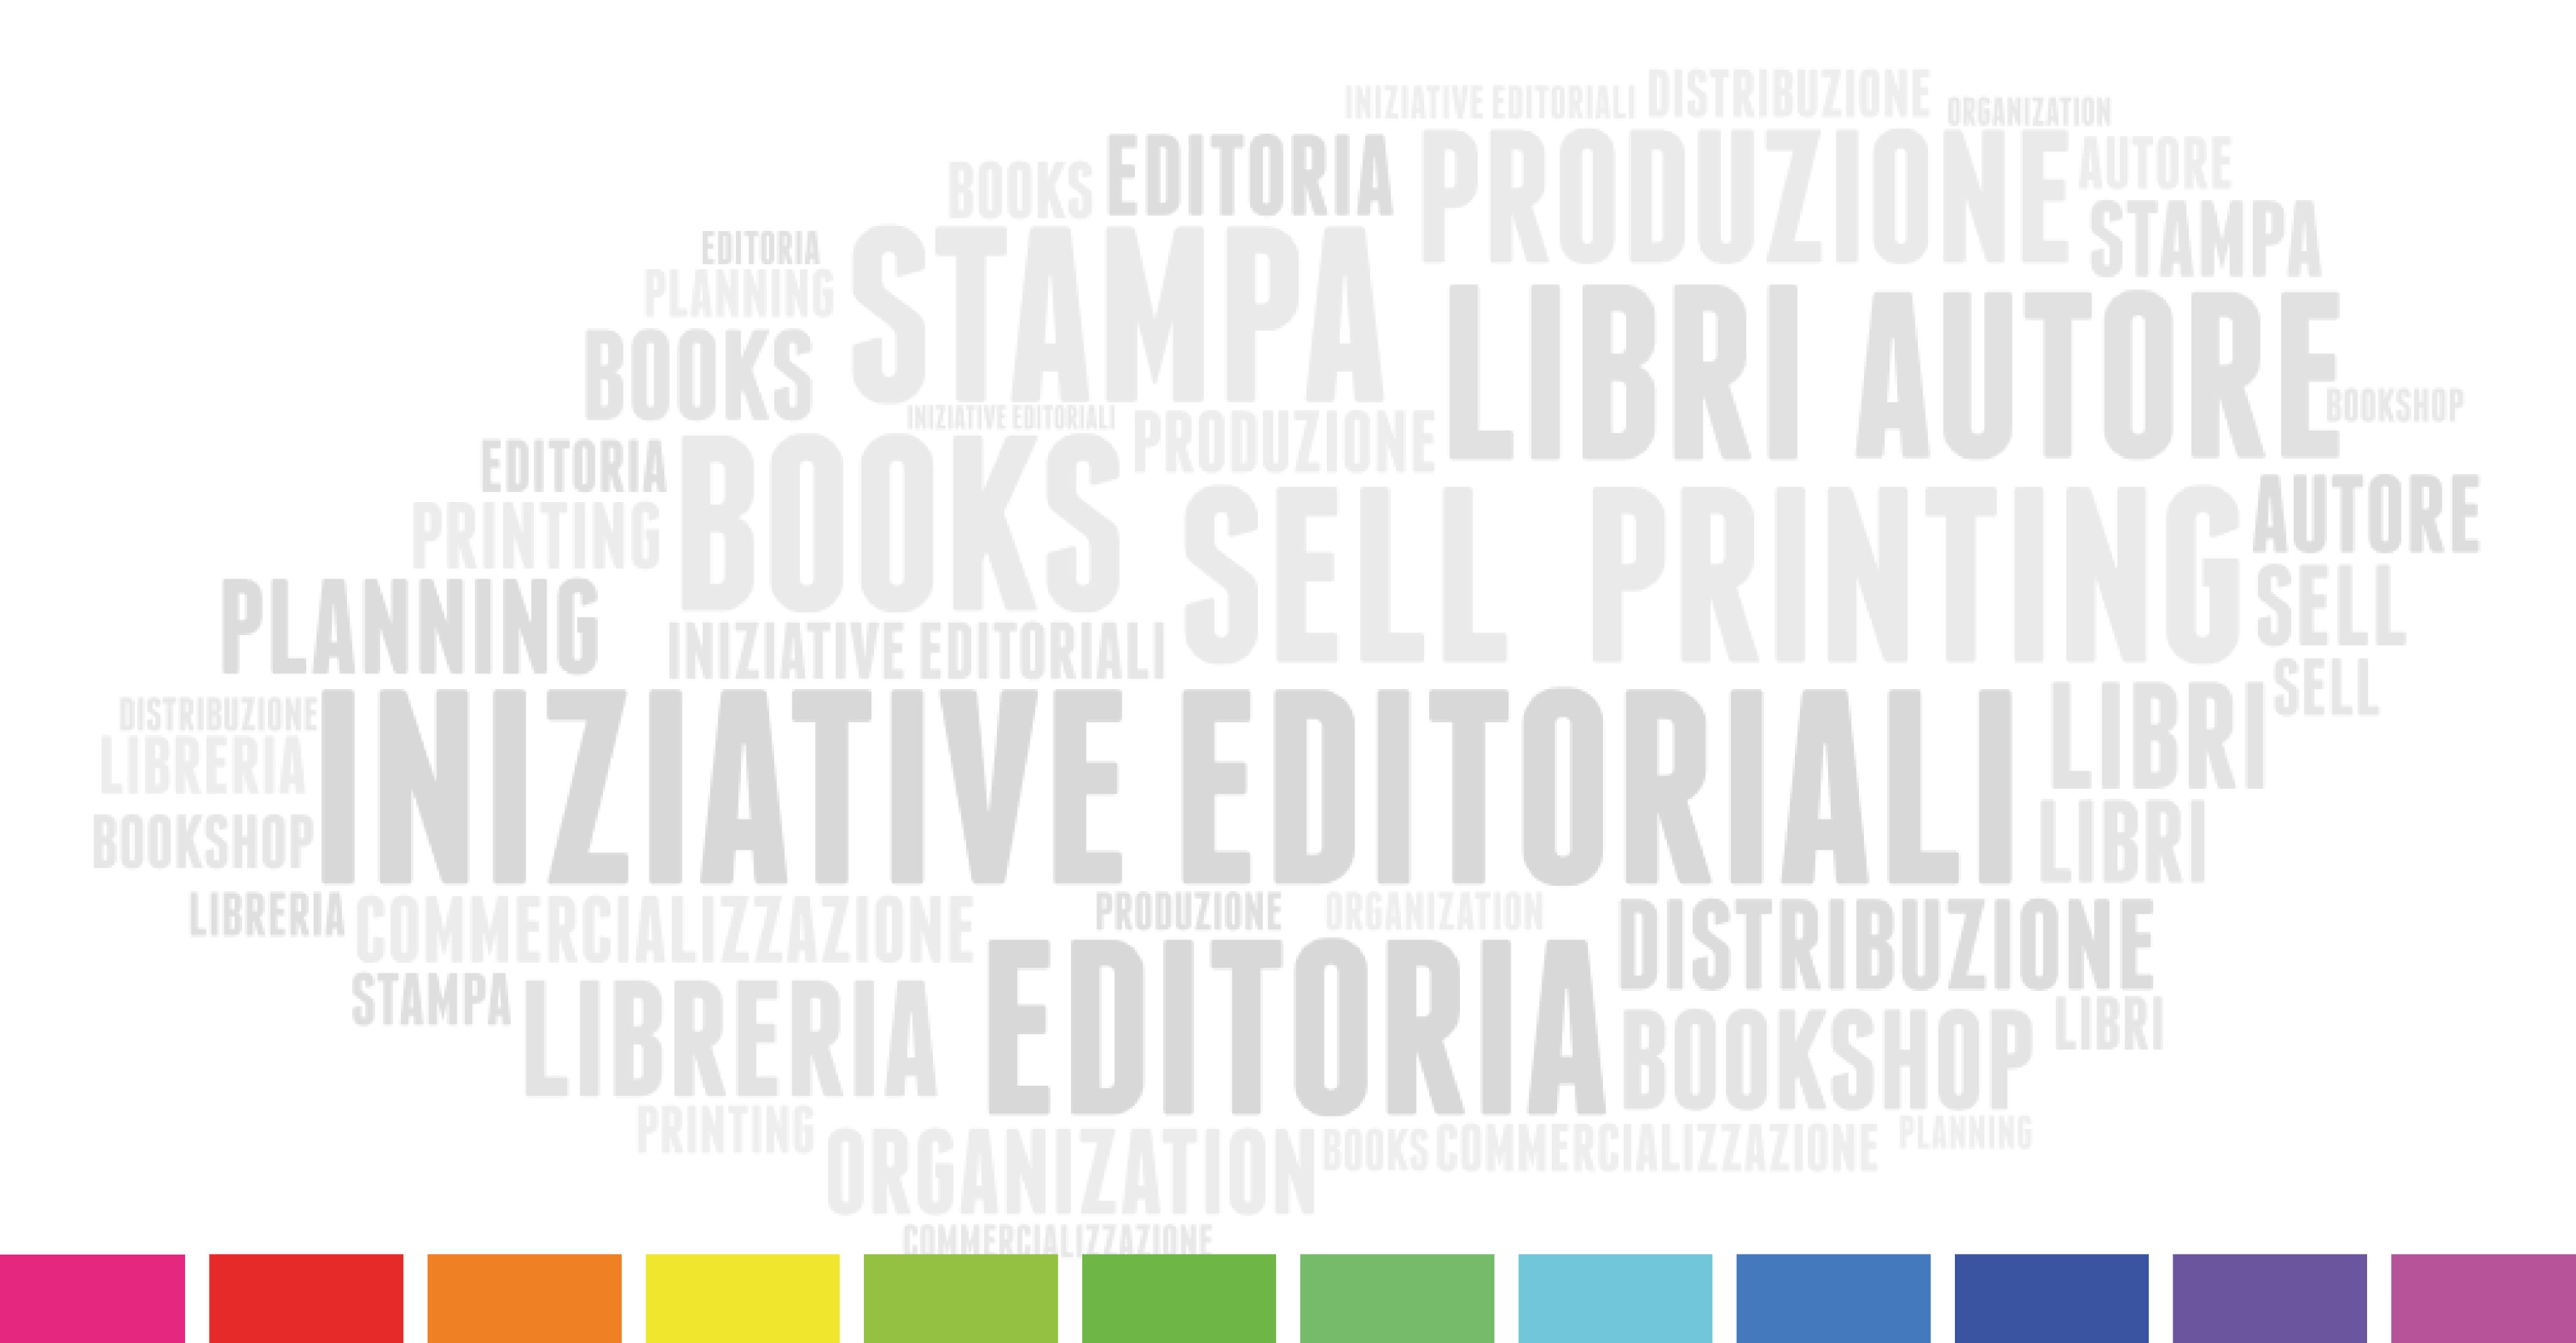 Iniziative editoriali